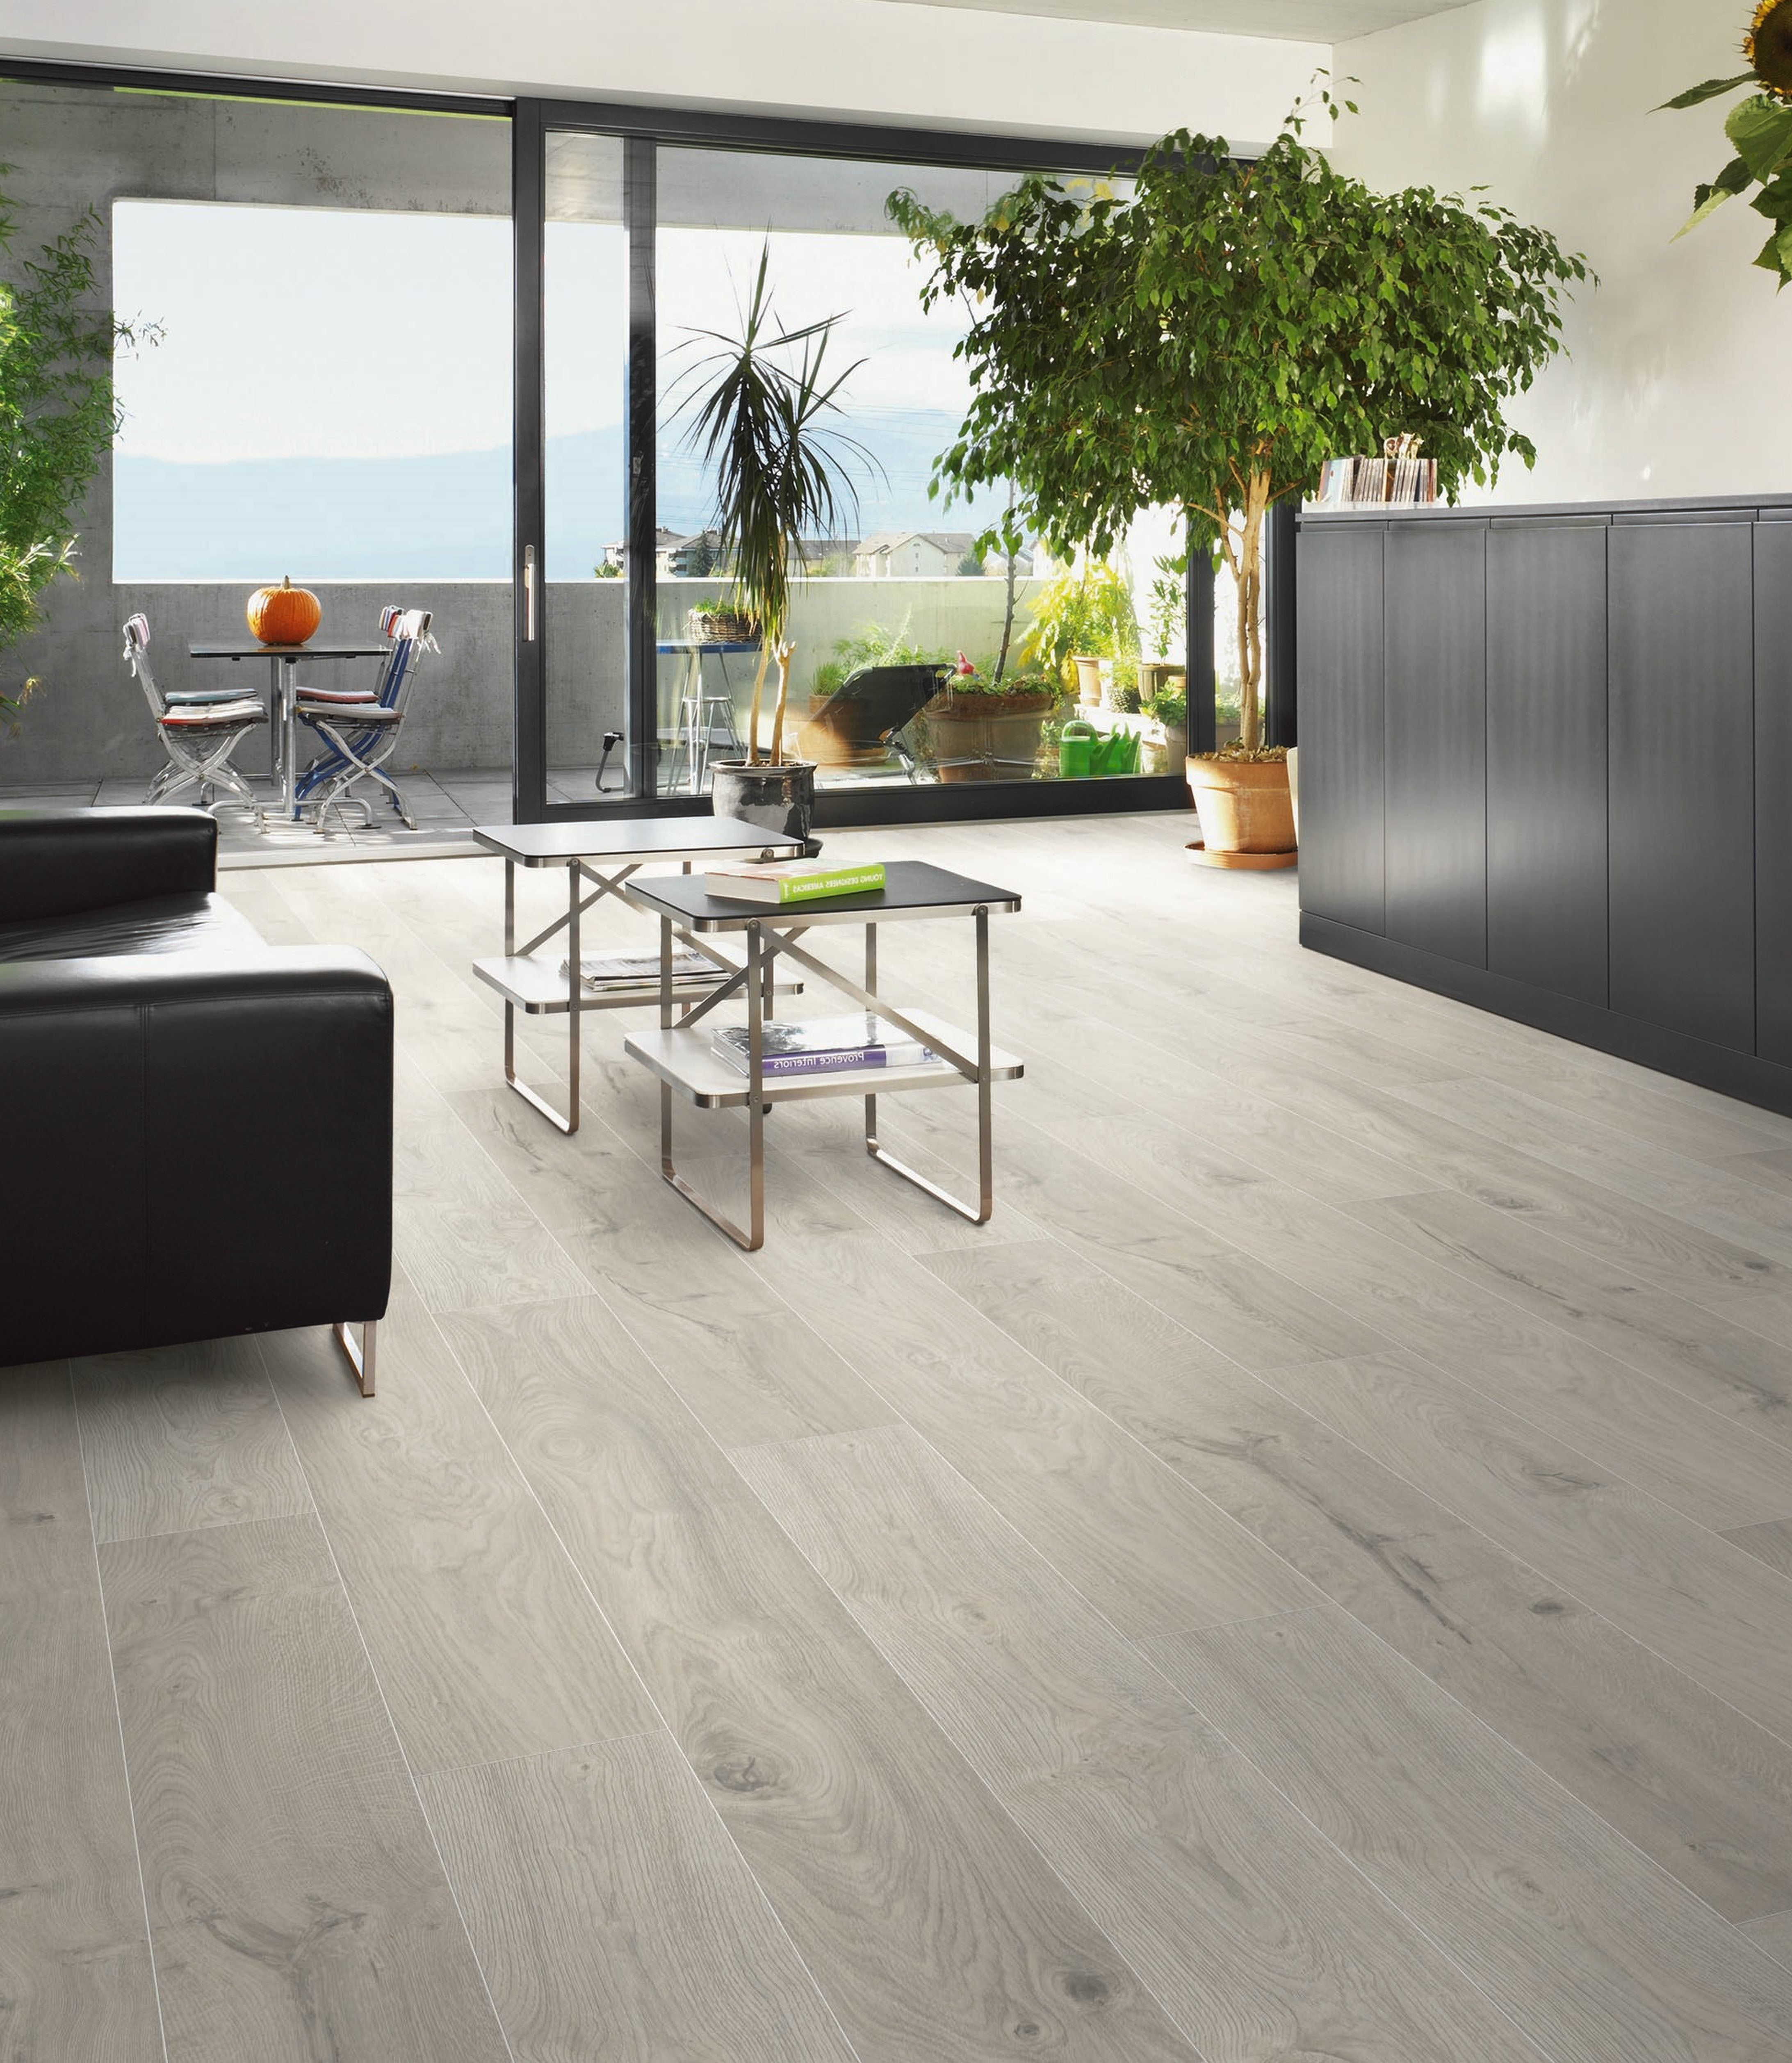 Order Free Samples Of FREE Samples: Cavero By Swiss Krono